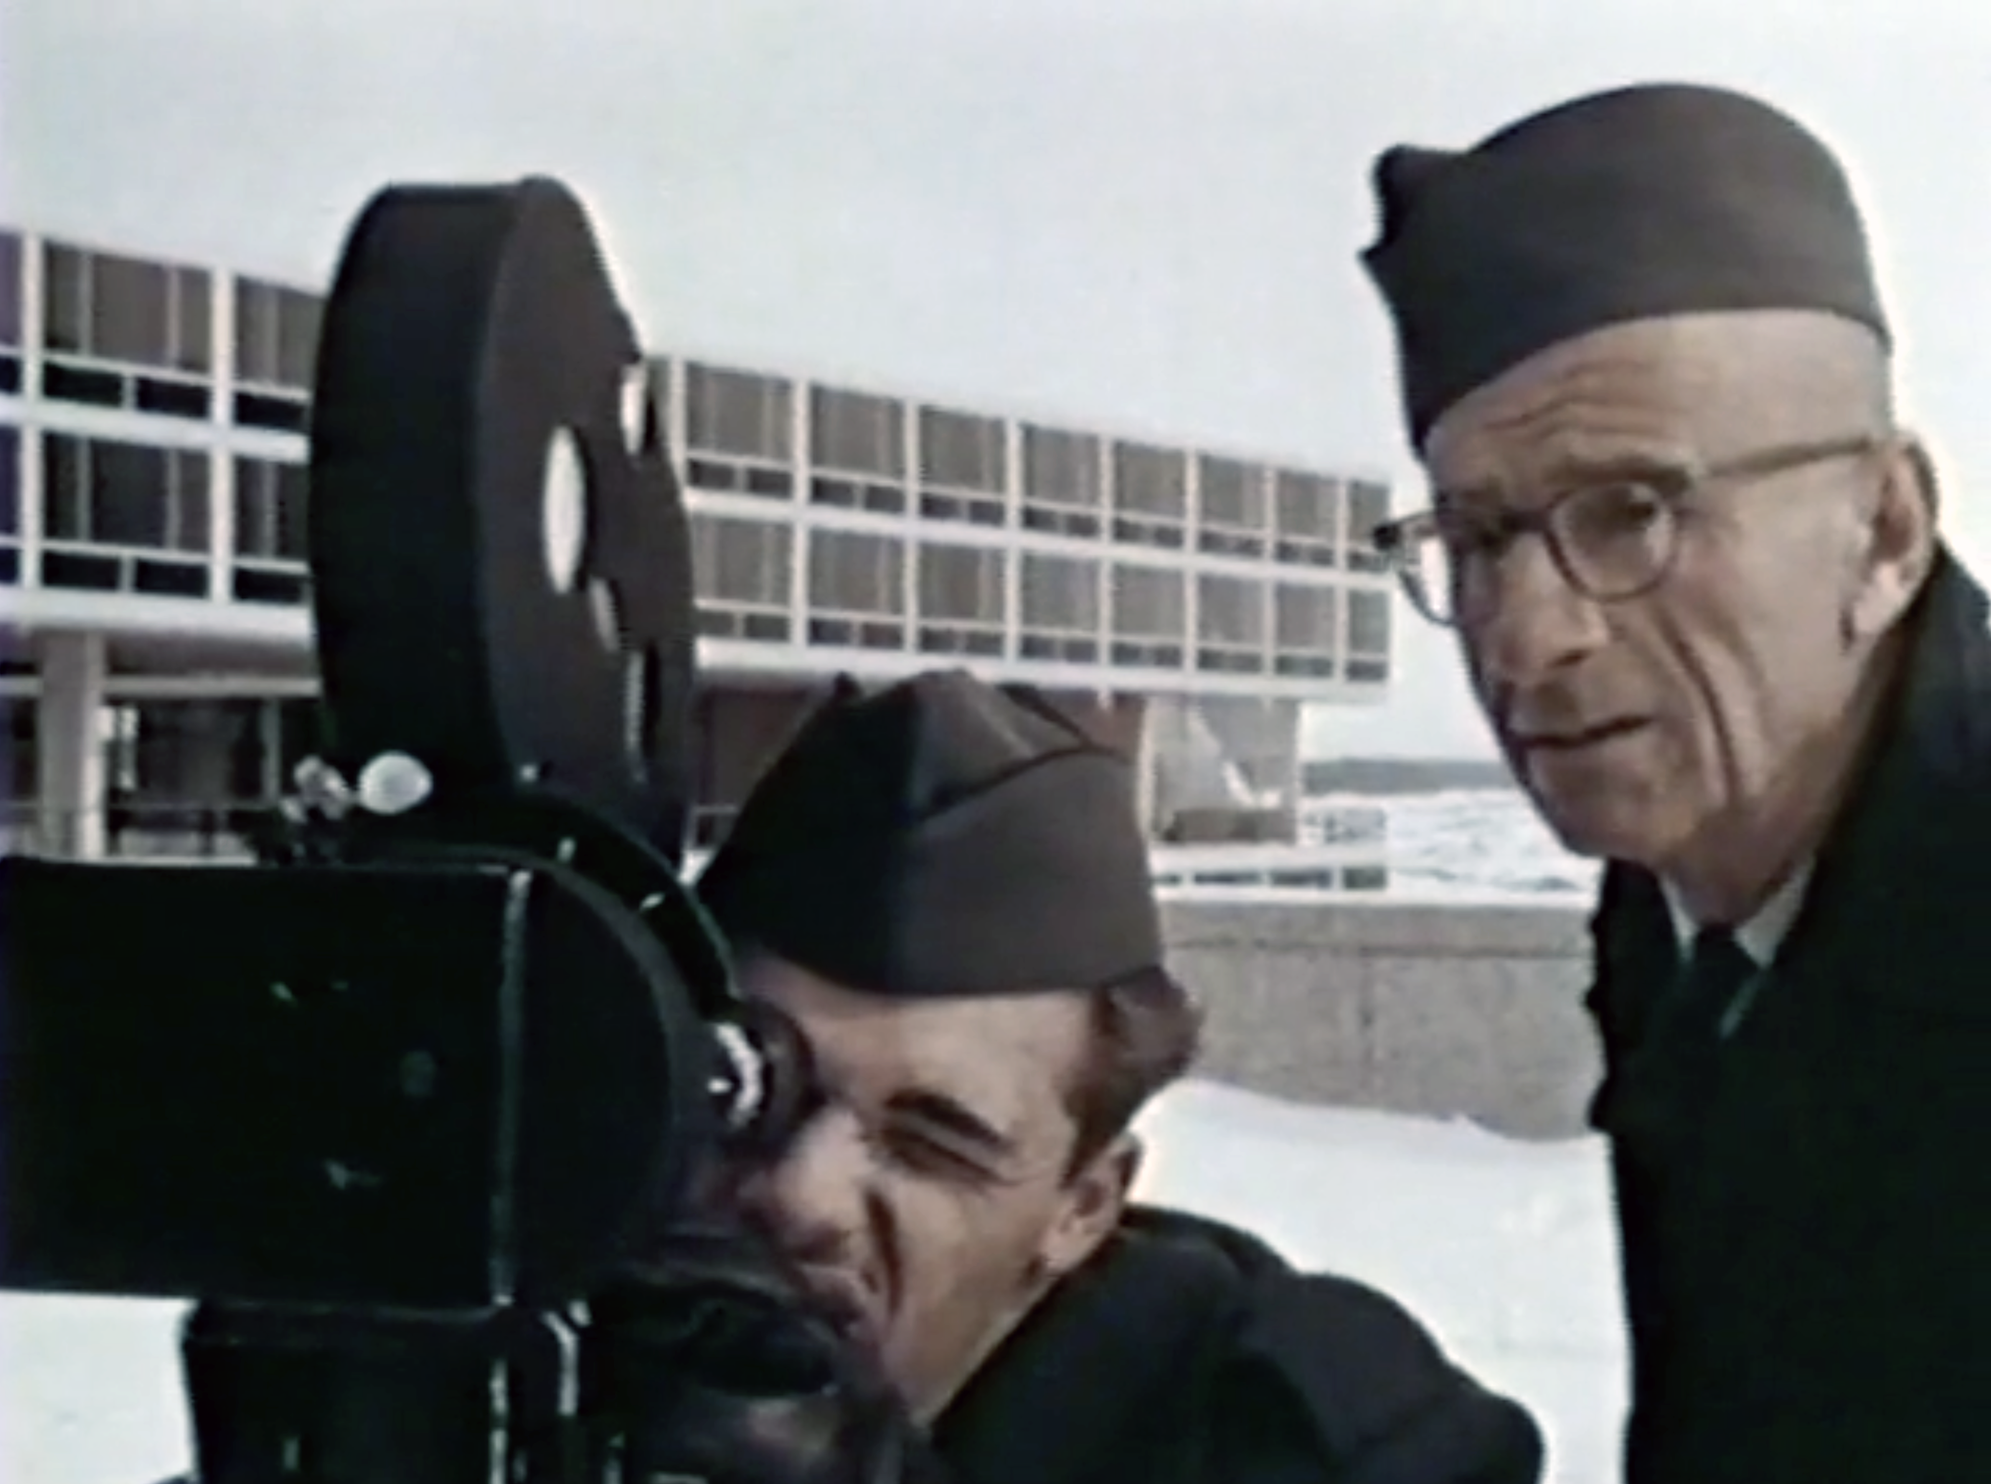 Soft-focus image of two White- and male-presenting people in military uniform operating a film camera. A modernist building from the U.S. Air Force Academy campus is in the background